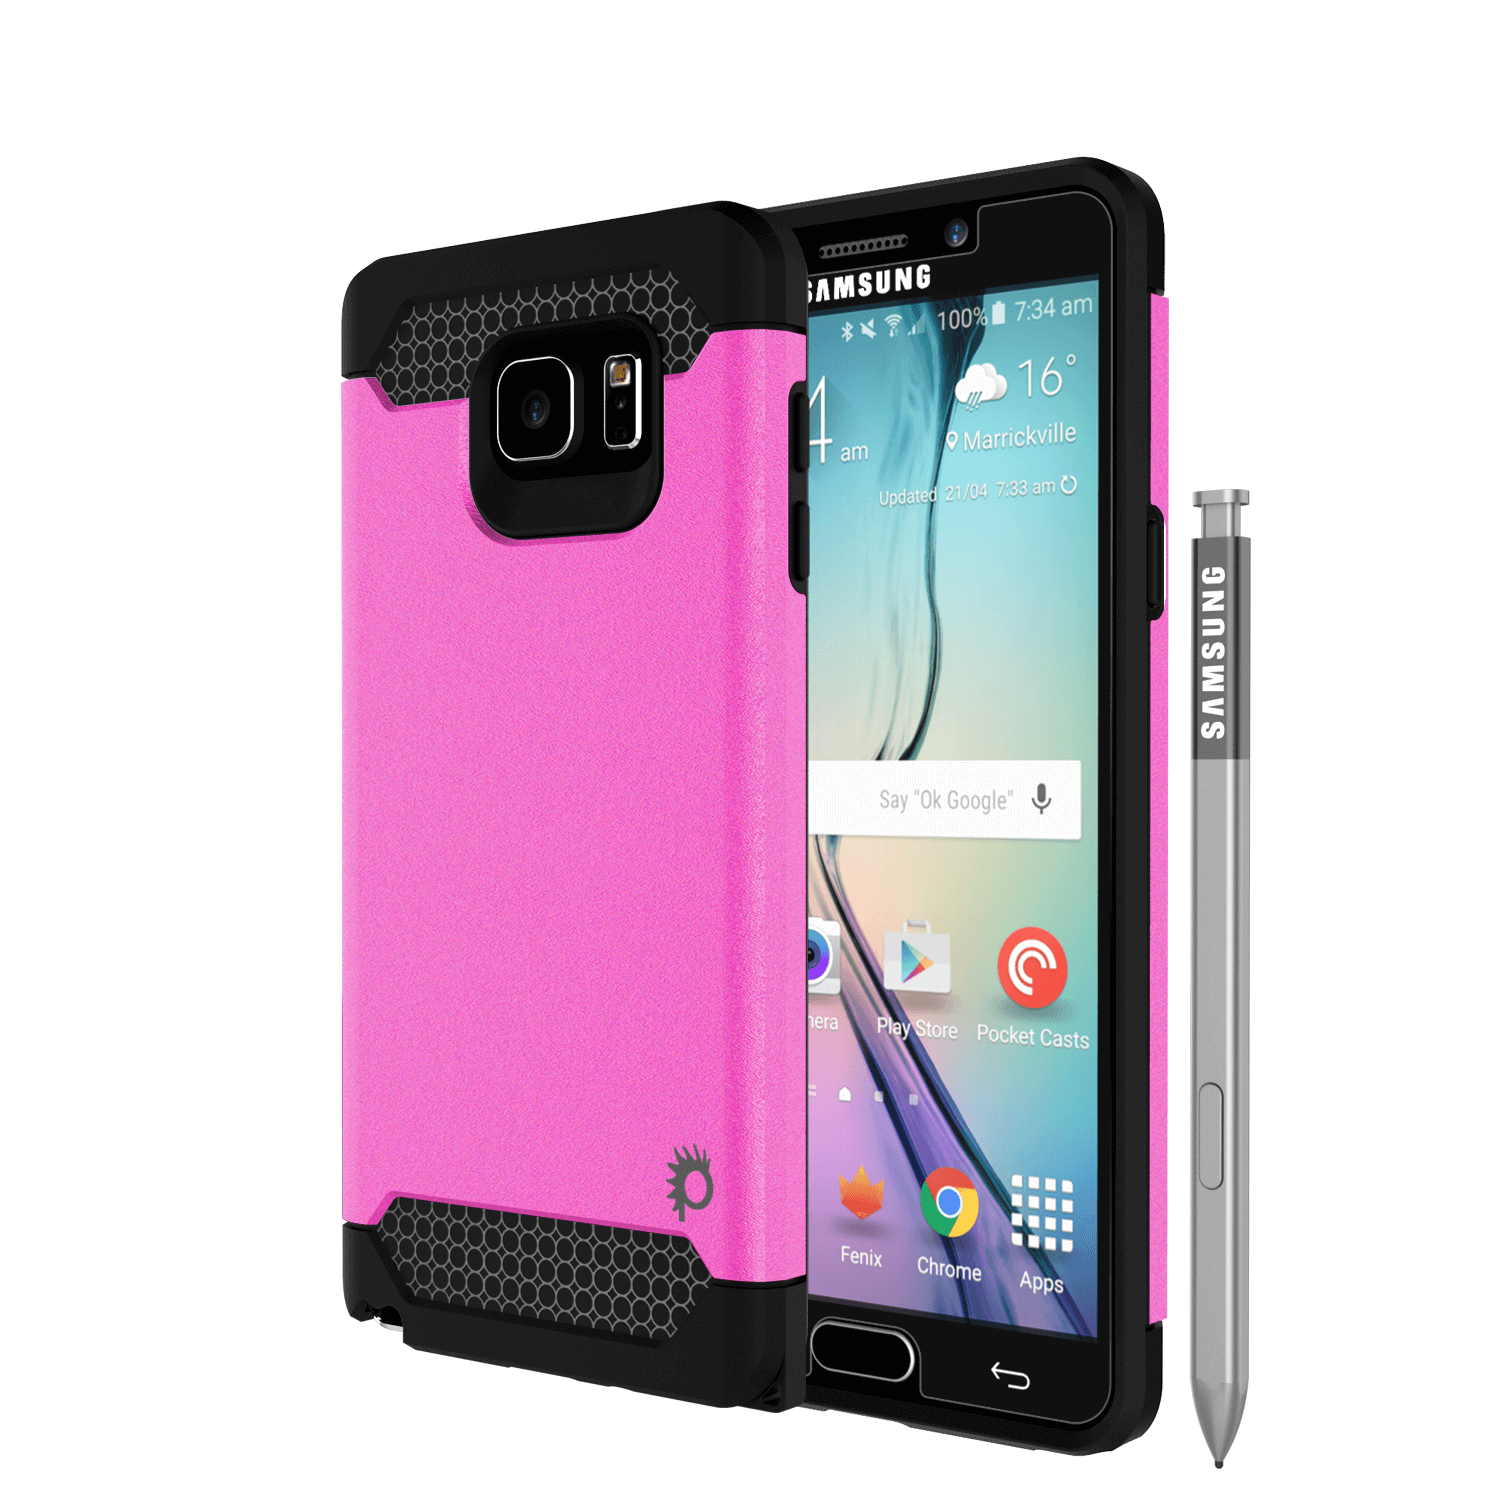 Galaxy Note 5 Case PunkCase Galactic Pink Series Slim Armor Soft Cover Case w/ Tempered Glass